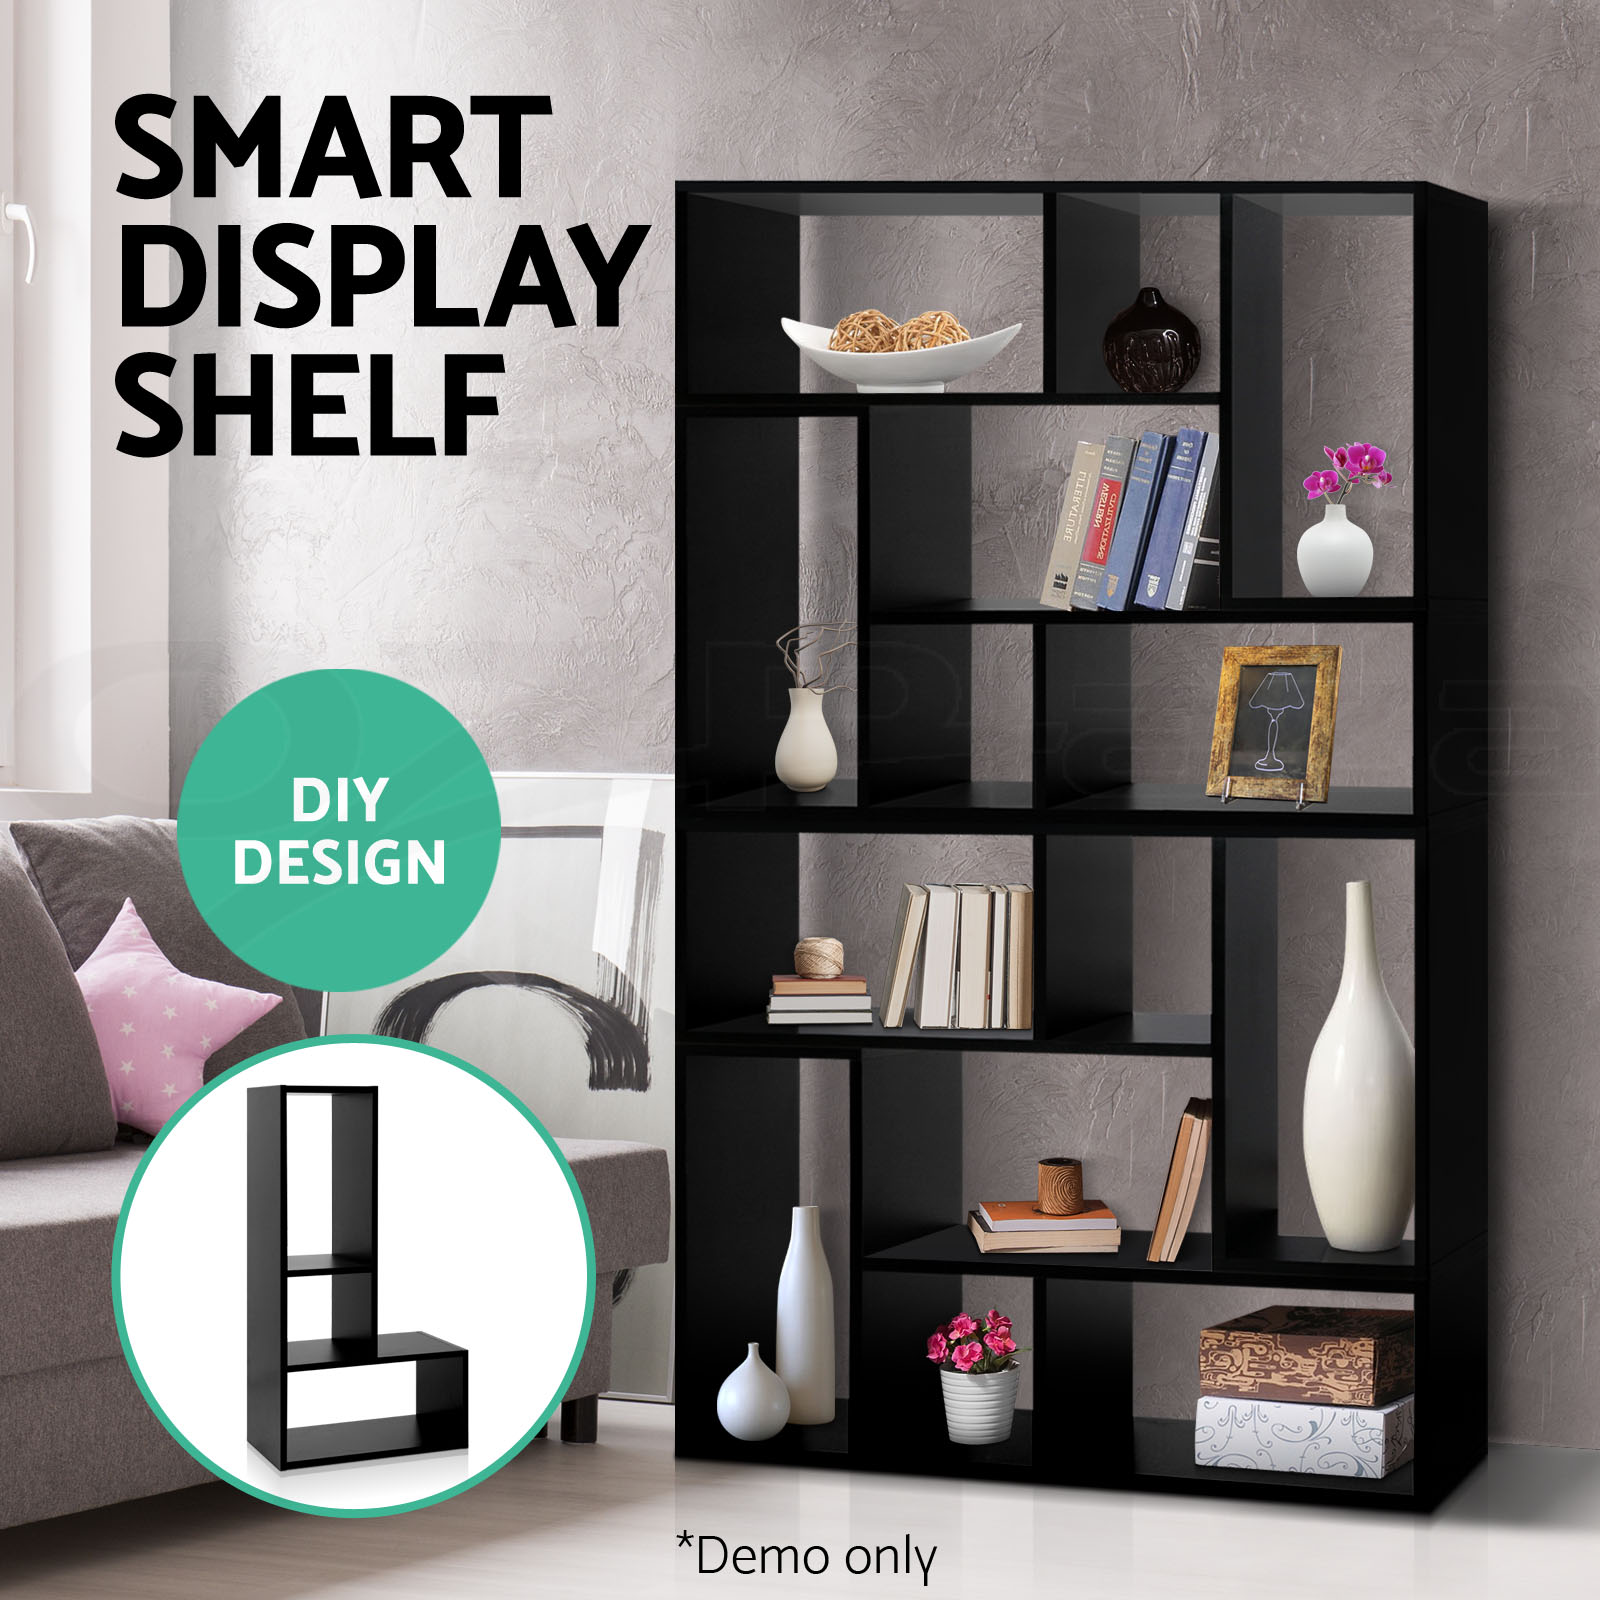 Display-L-Shape-Cube-Shelf-DIY-Sidetable-Cabinet-Storage-Corner-Bookshelf-Ladder